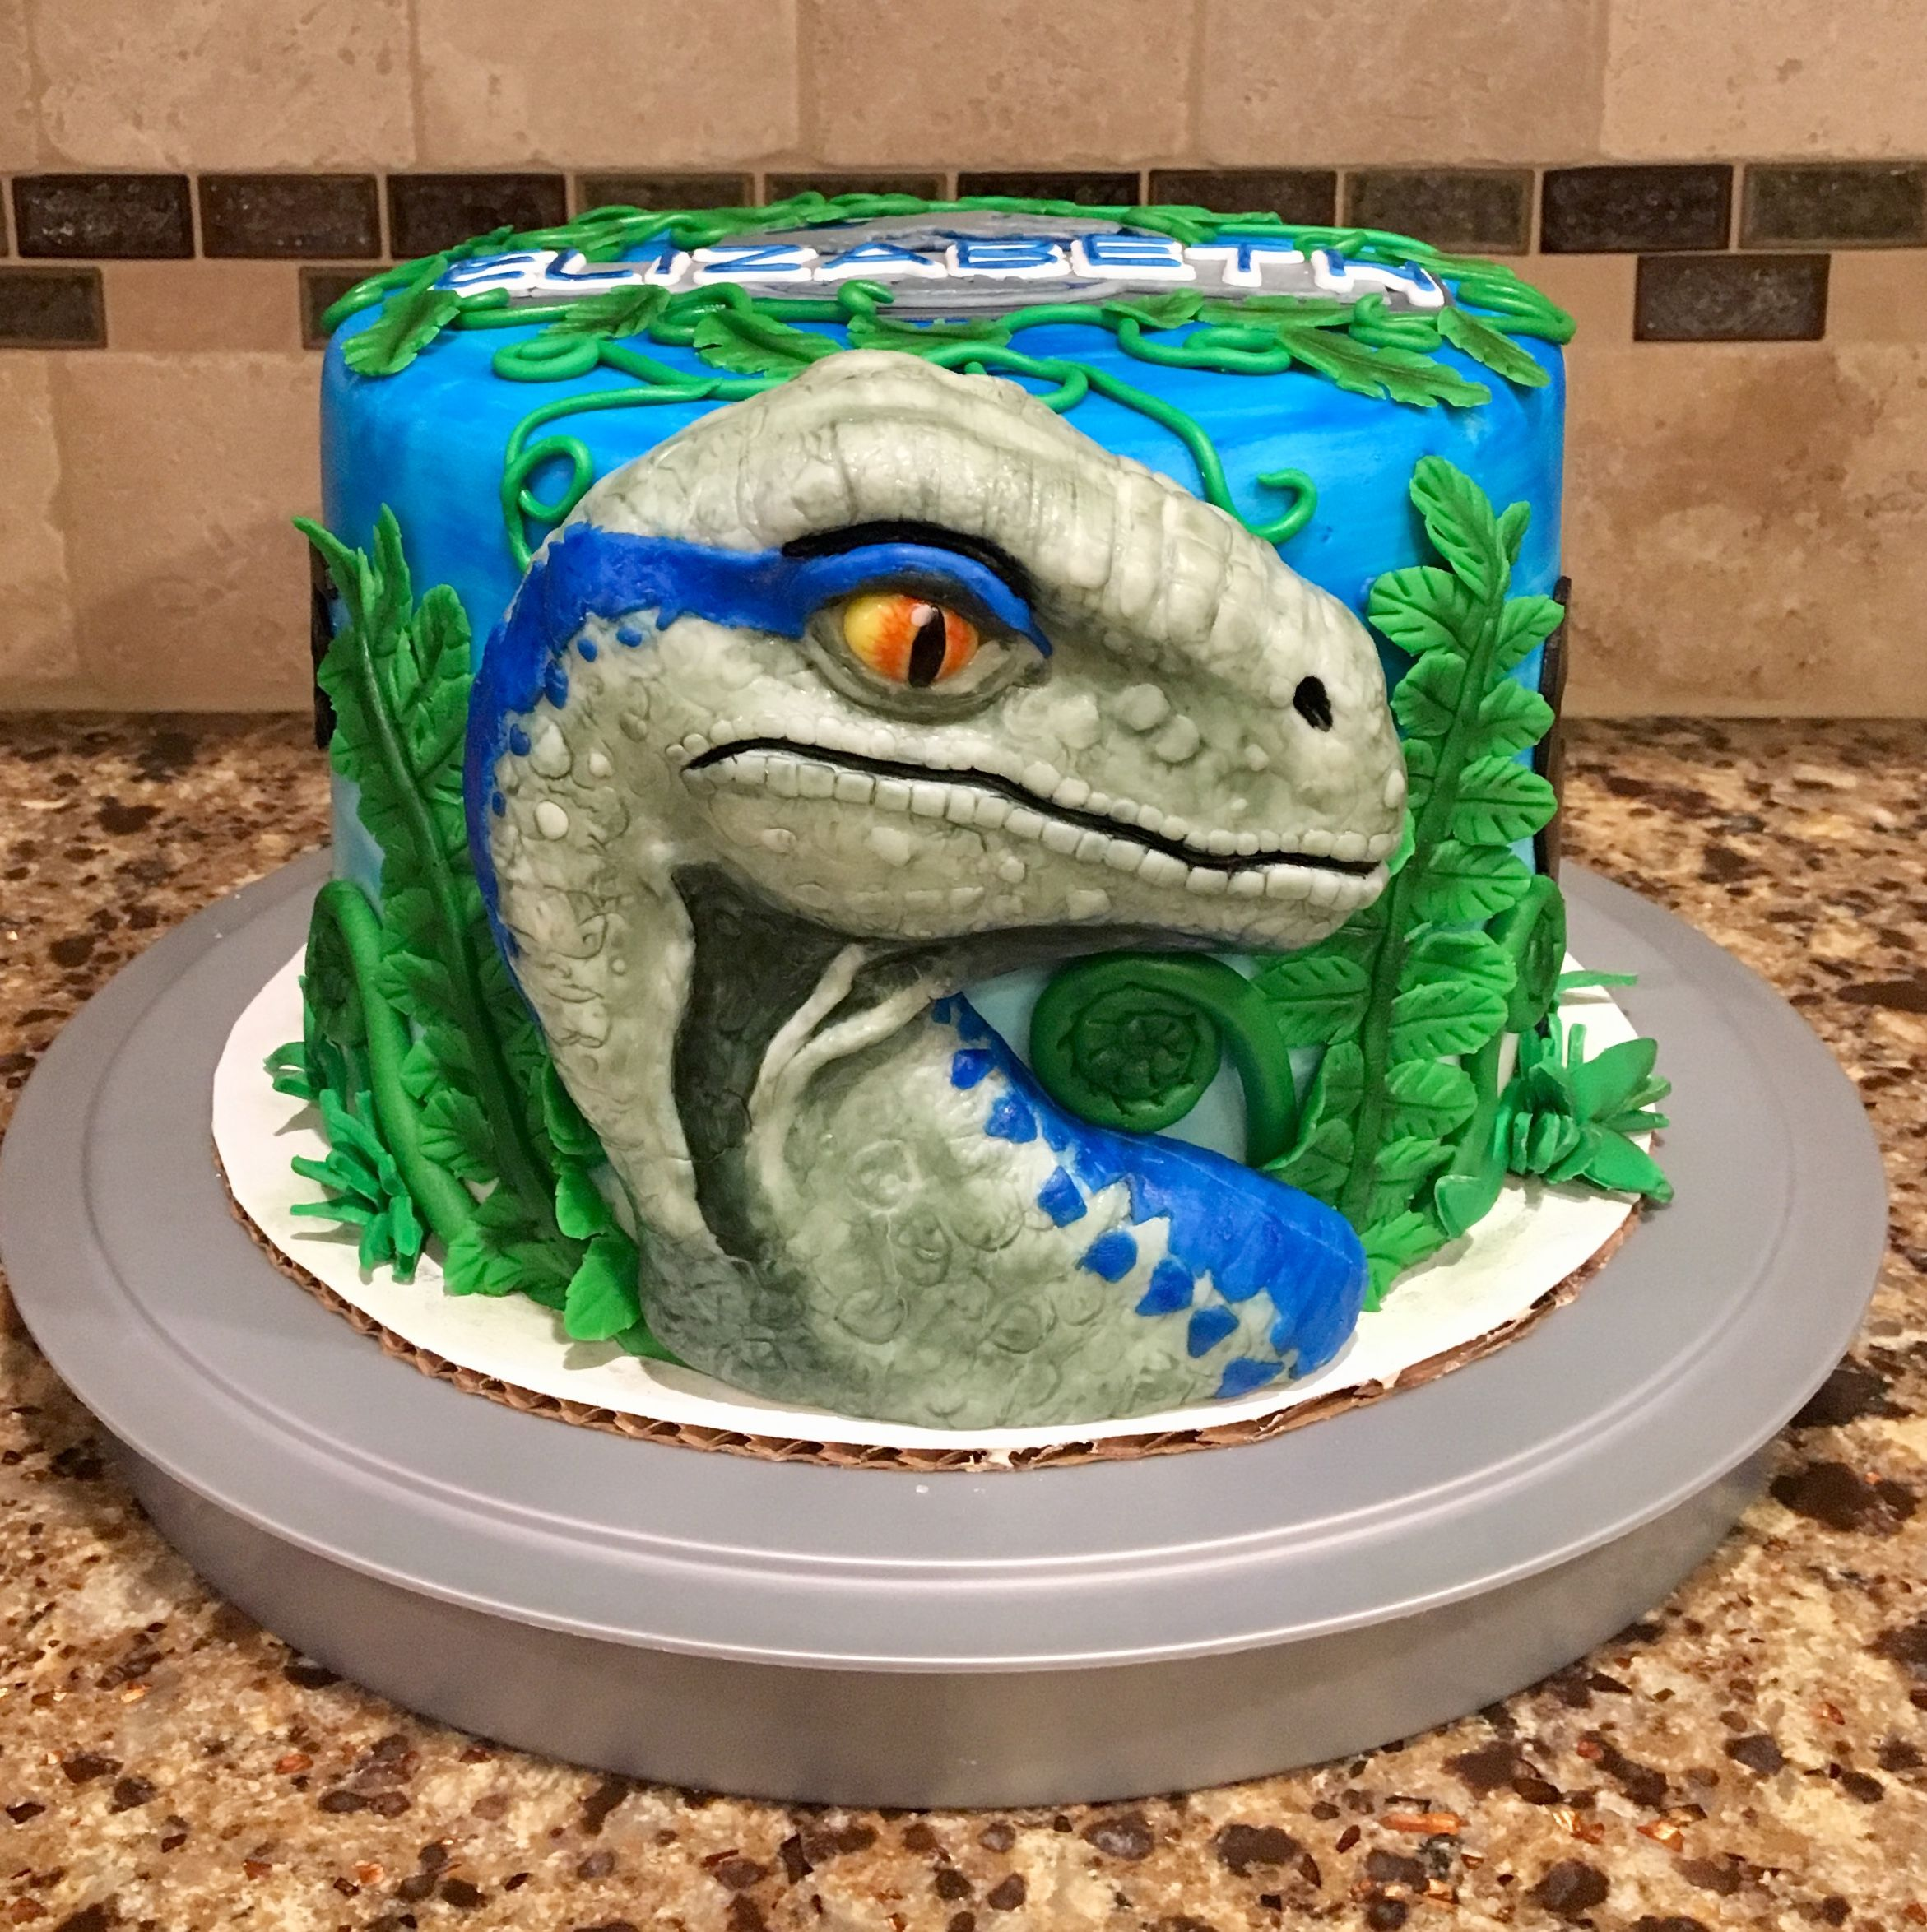 Cake I Made Featuring Blue The Velociraptor From The Jurassic